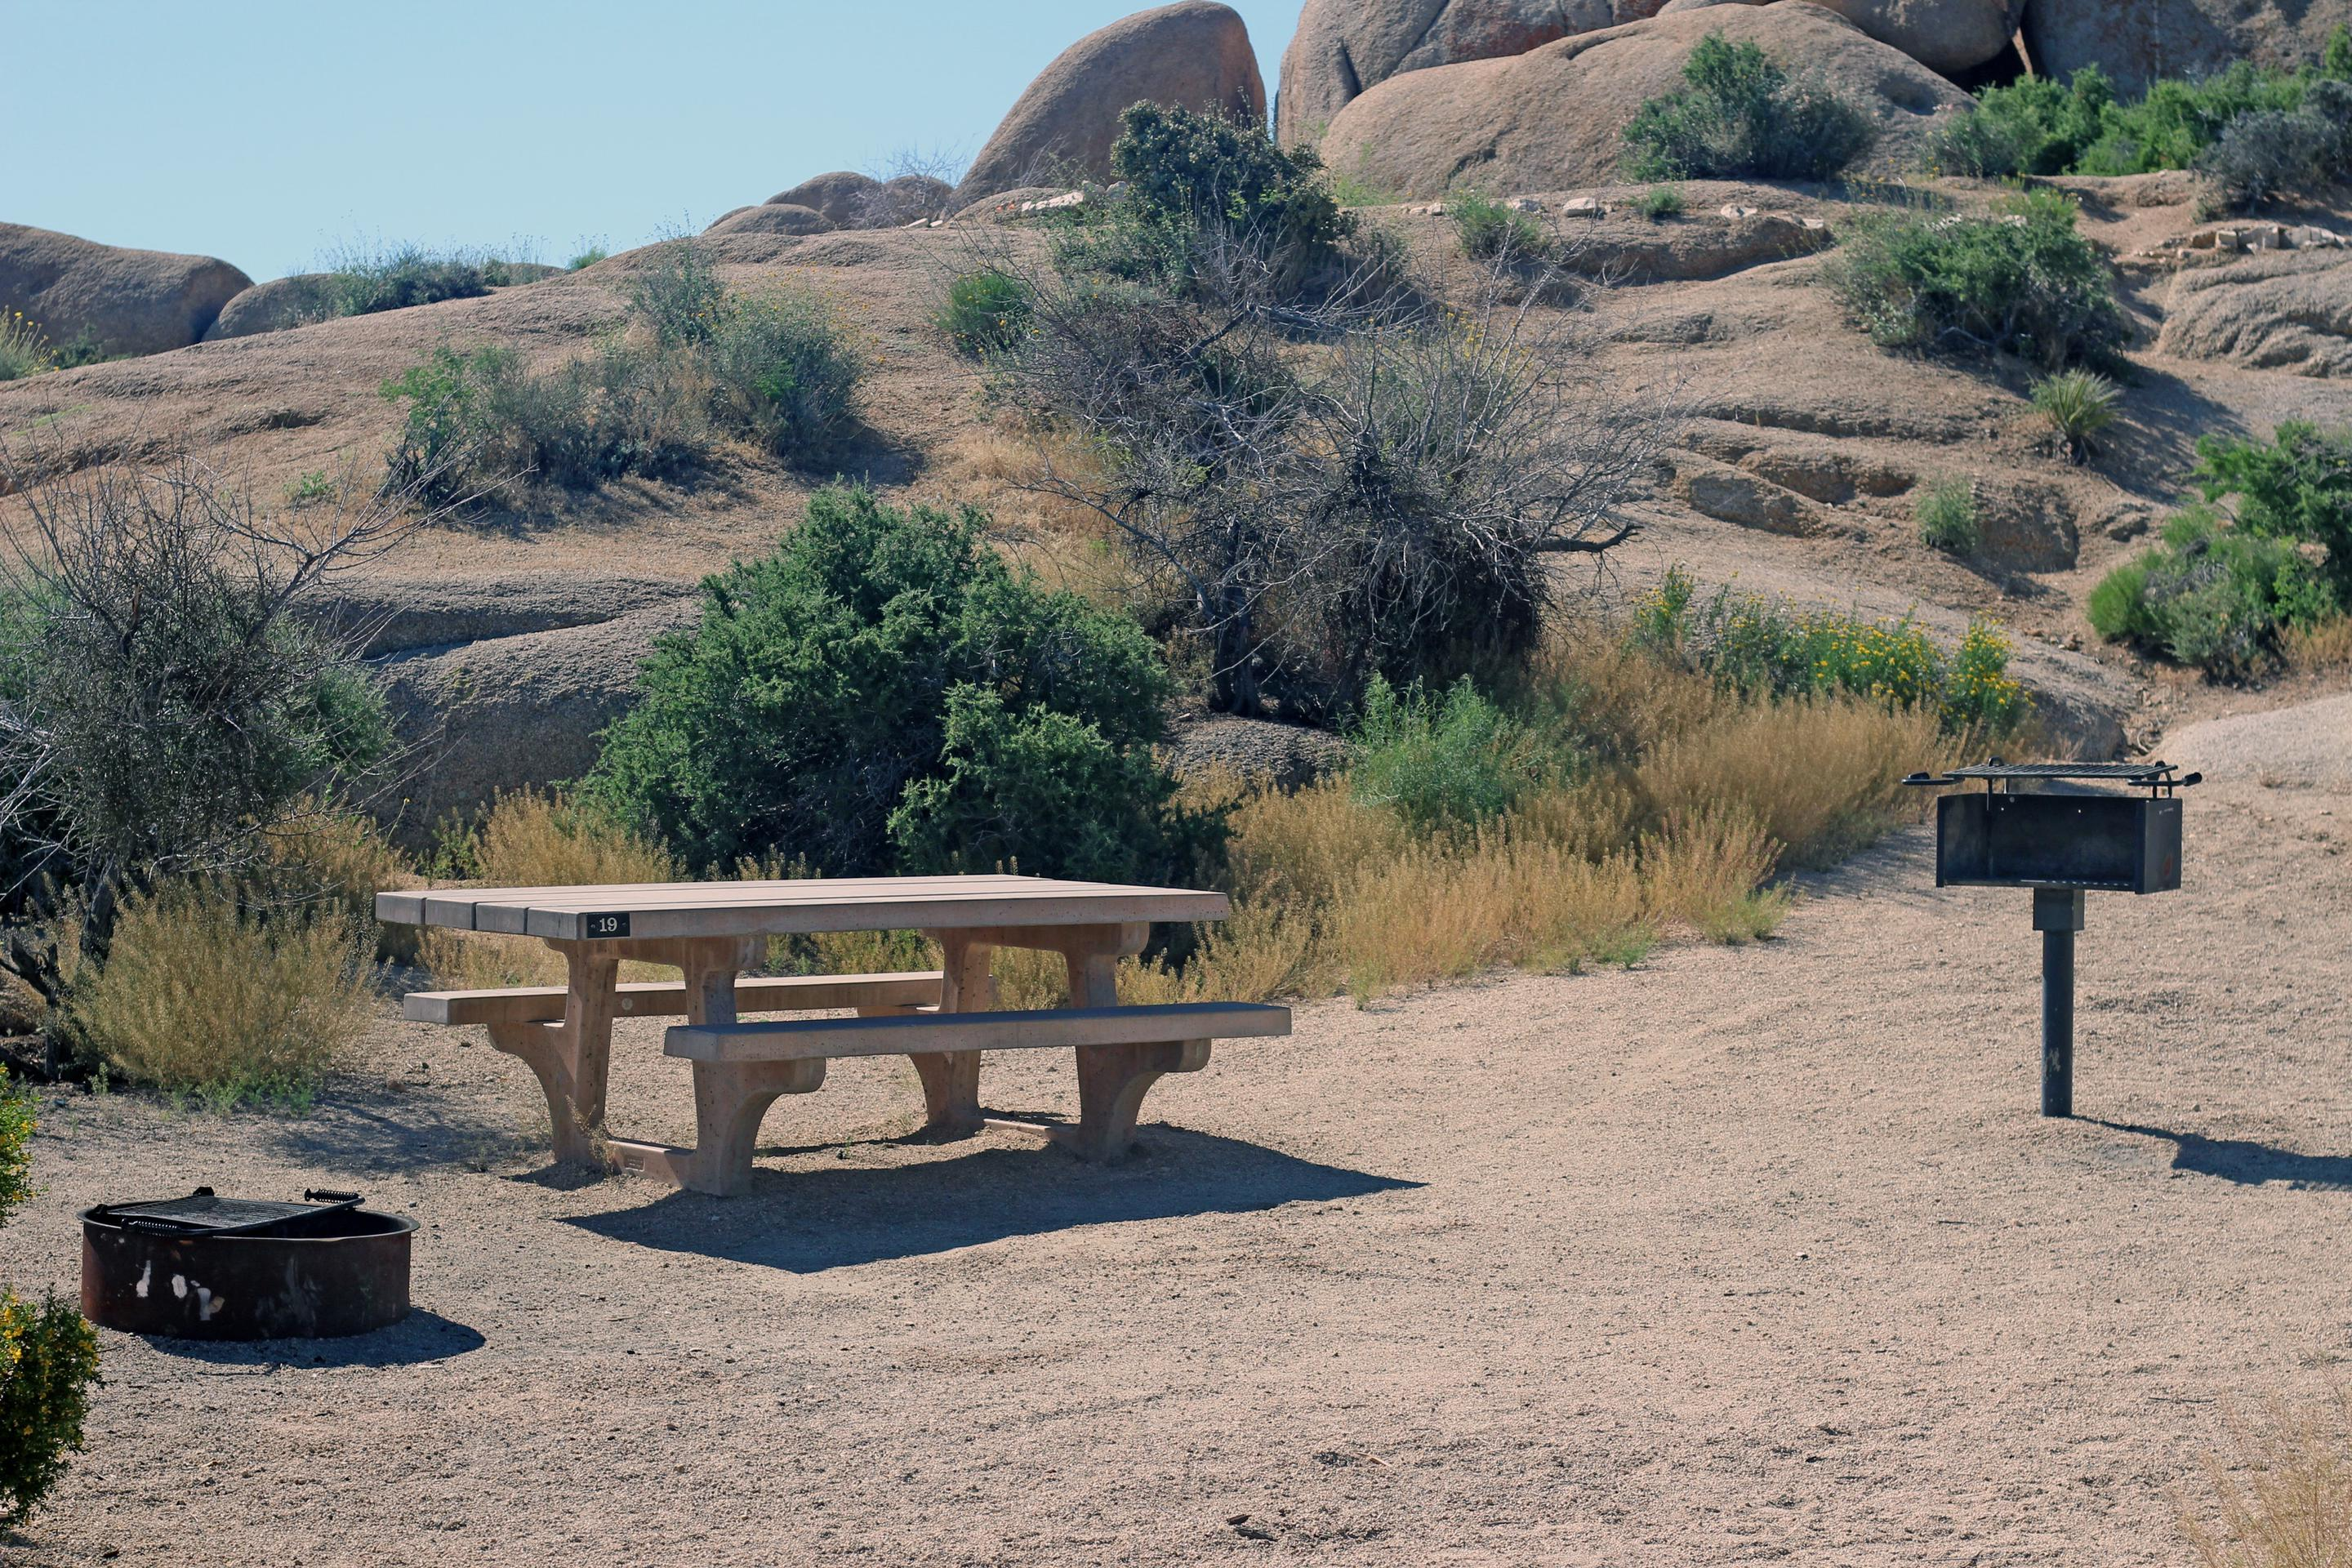 Shared parking for campsite. Picnic table surrounded by boulders and green plants.Campsite.